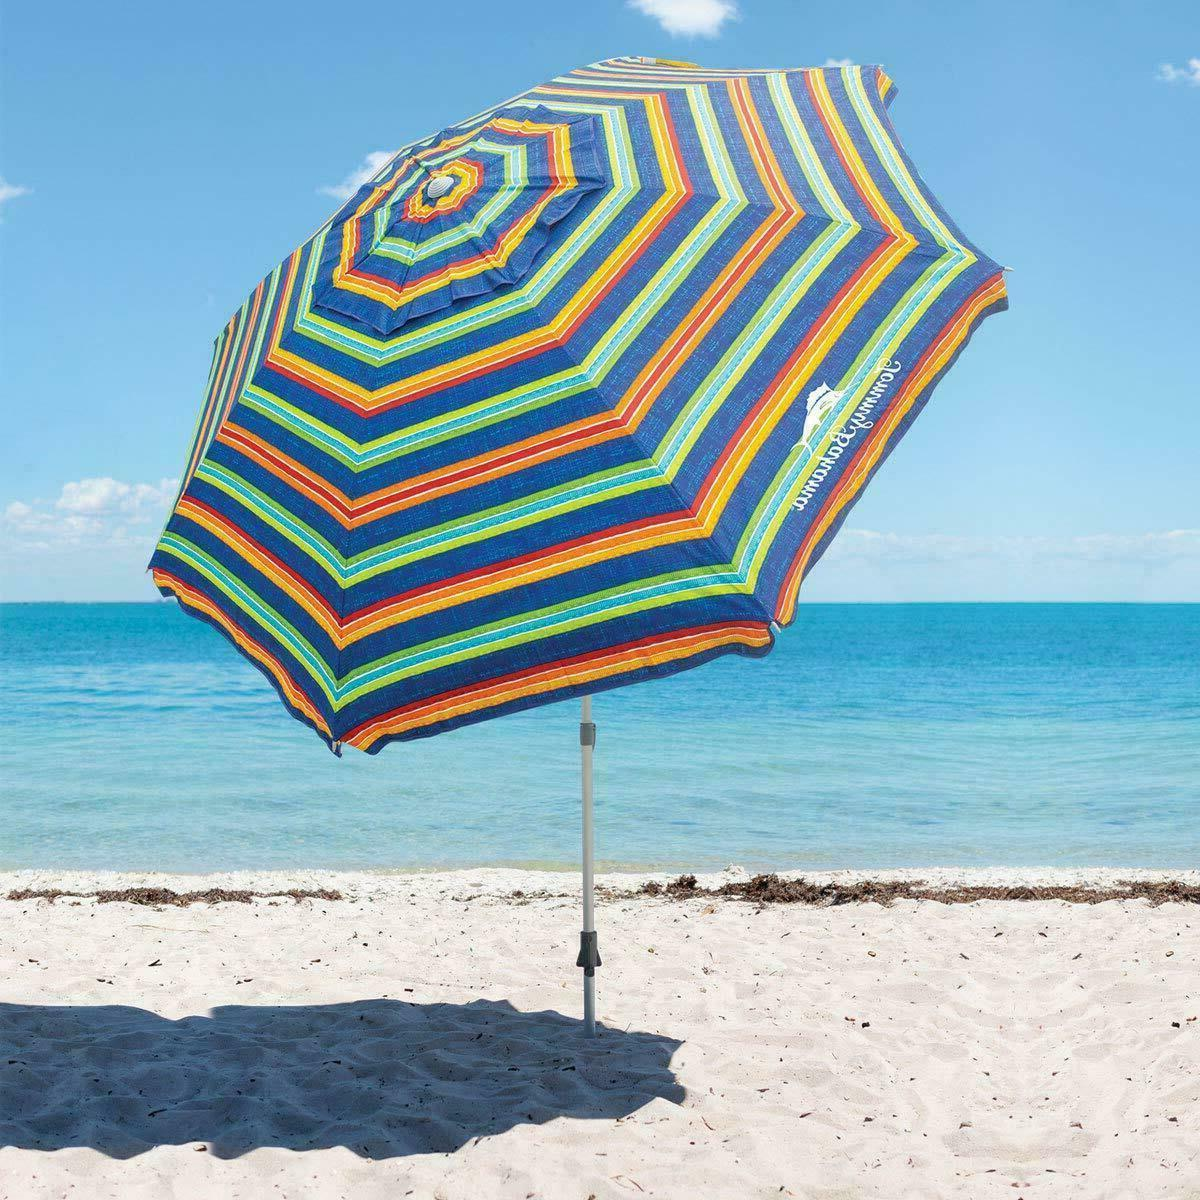 Tommy Bahama 8' Beach Umbrella with Tilt - Multi Color Strip